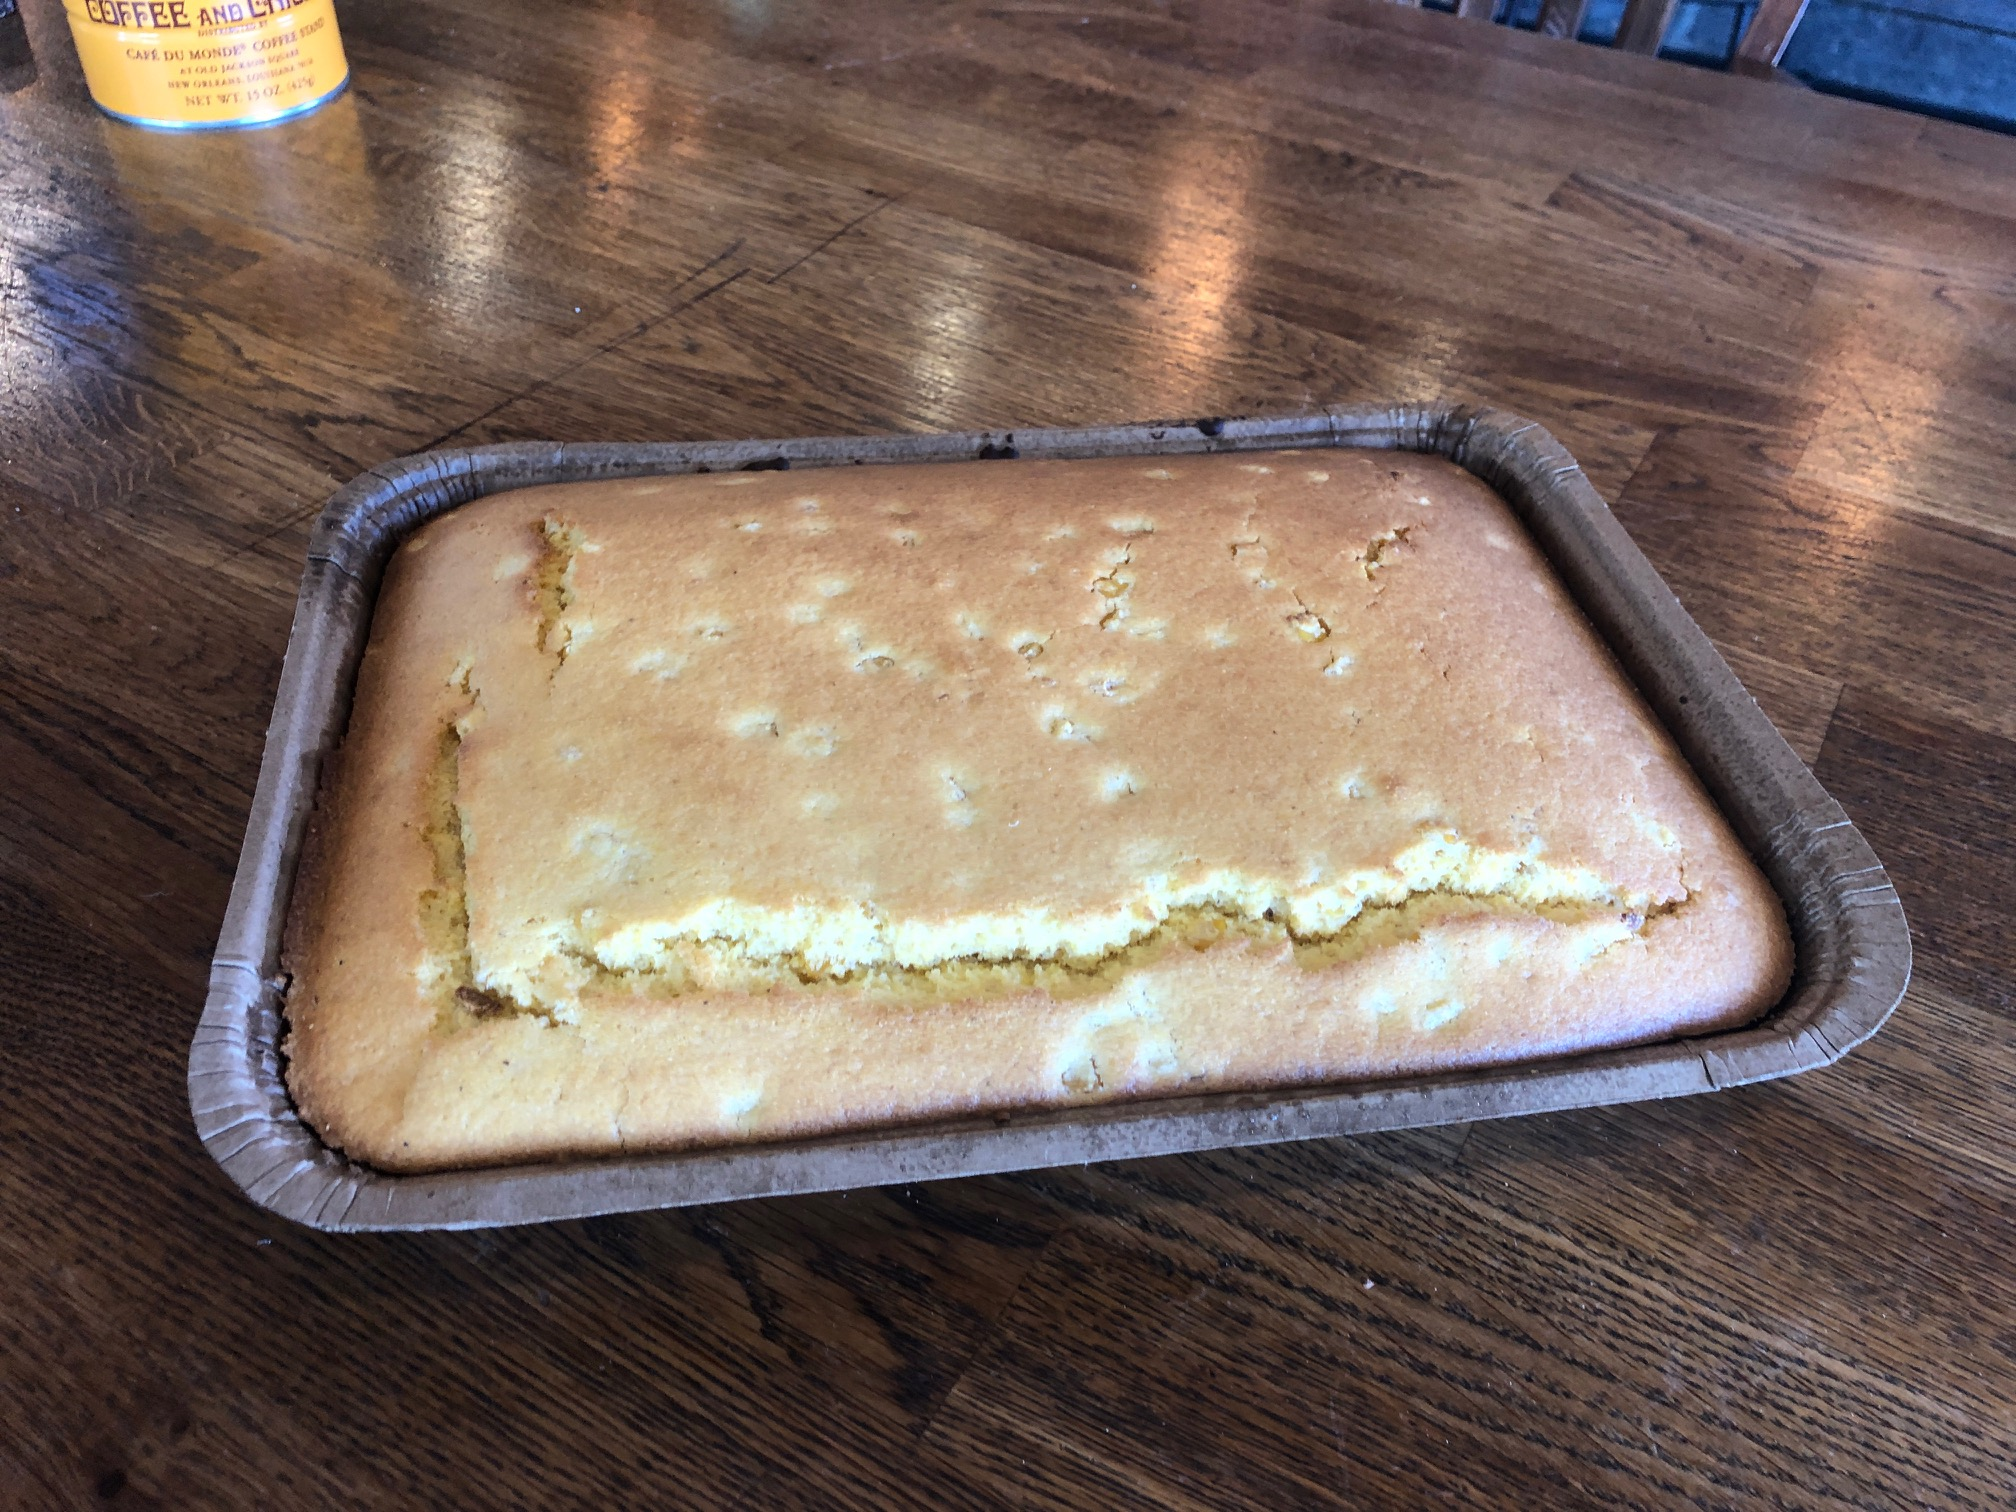 catered cornbread.jpeg